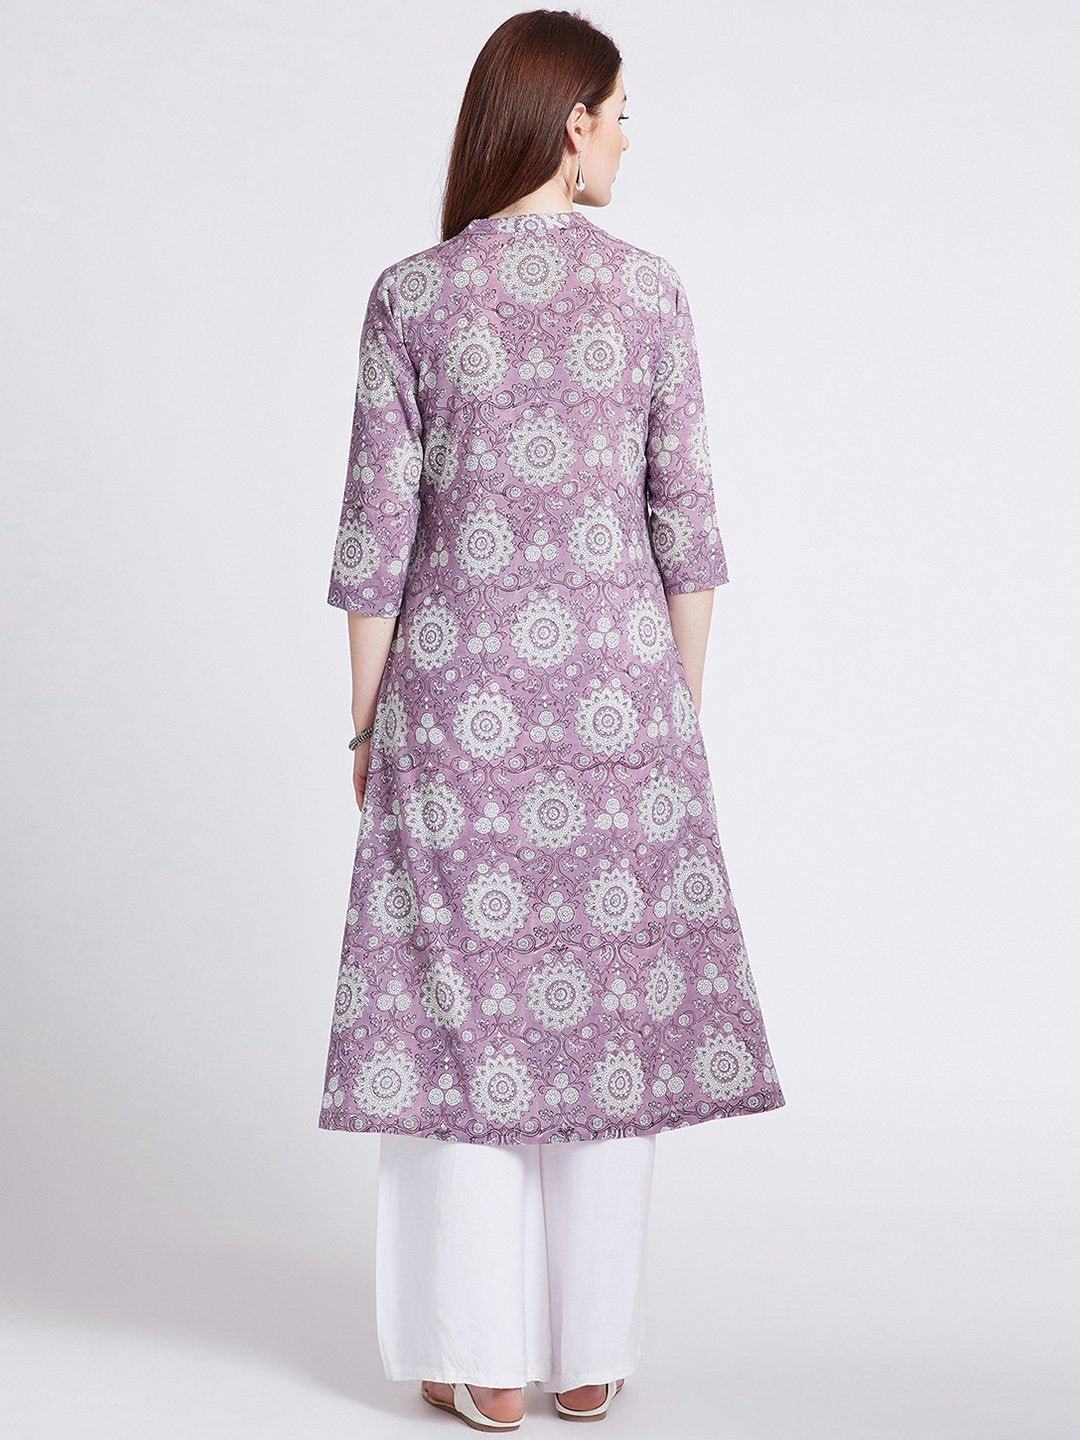 Indian ethnic hand block printed long kurta with front slit in purple colour with pockets with button detailing on front